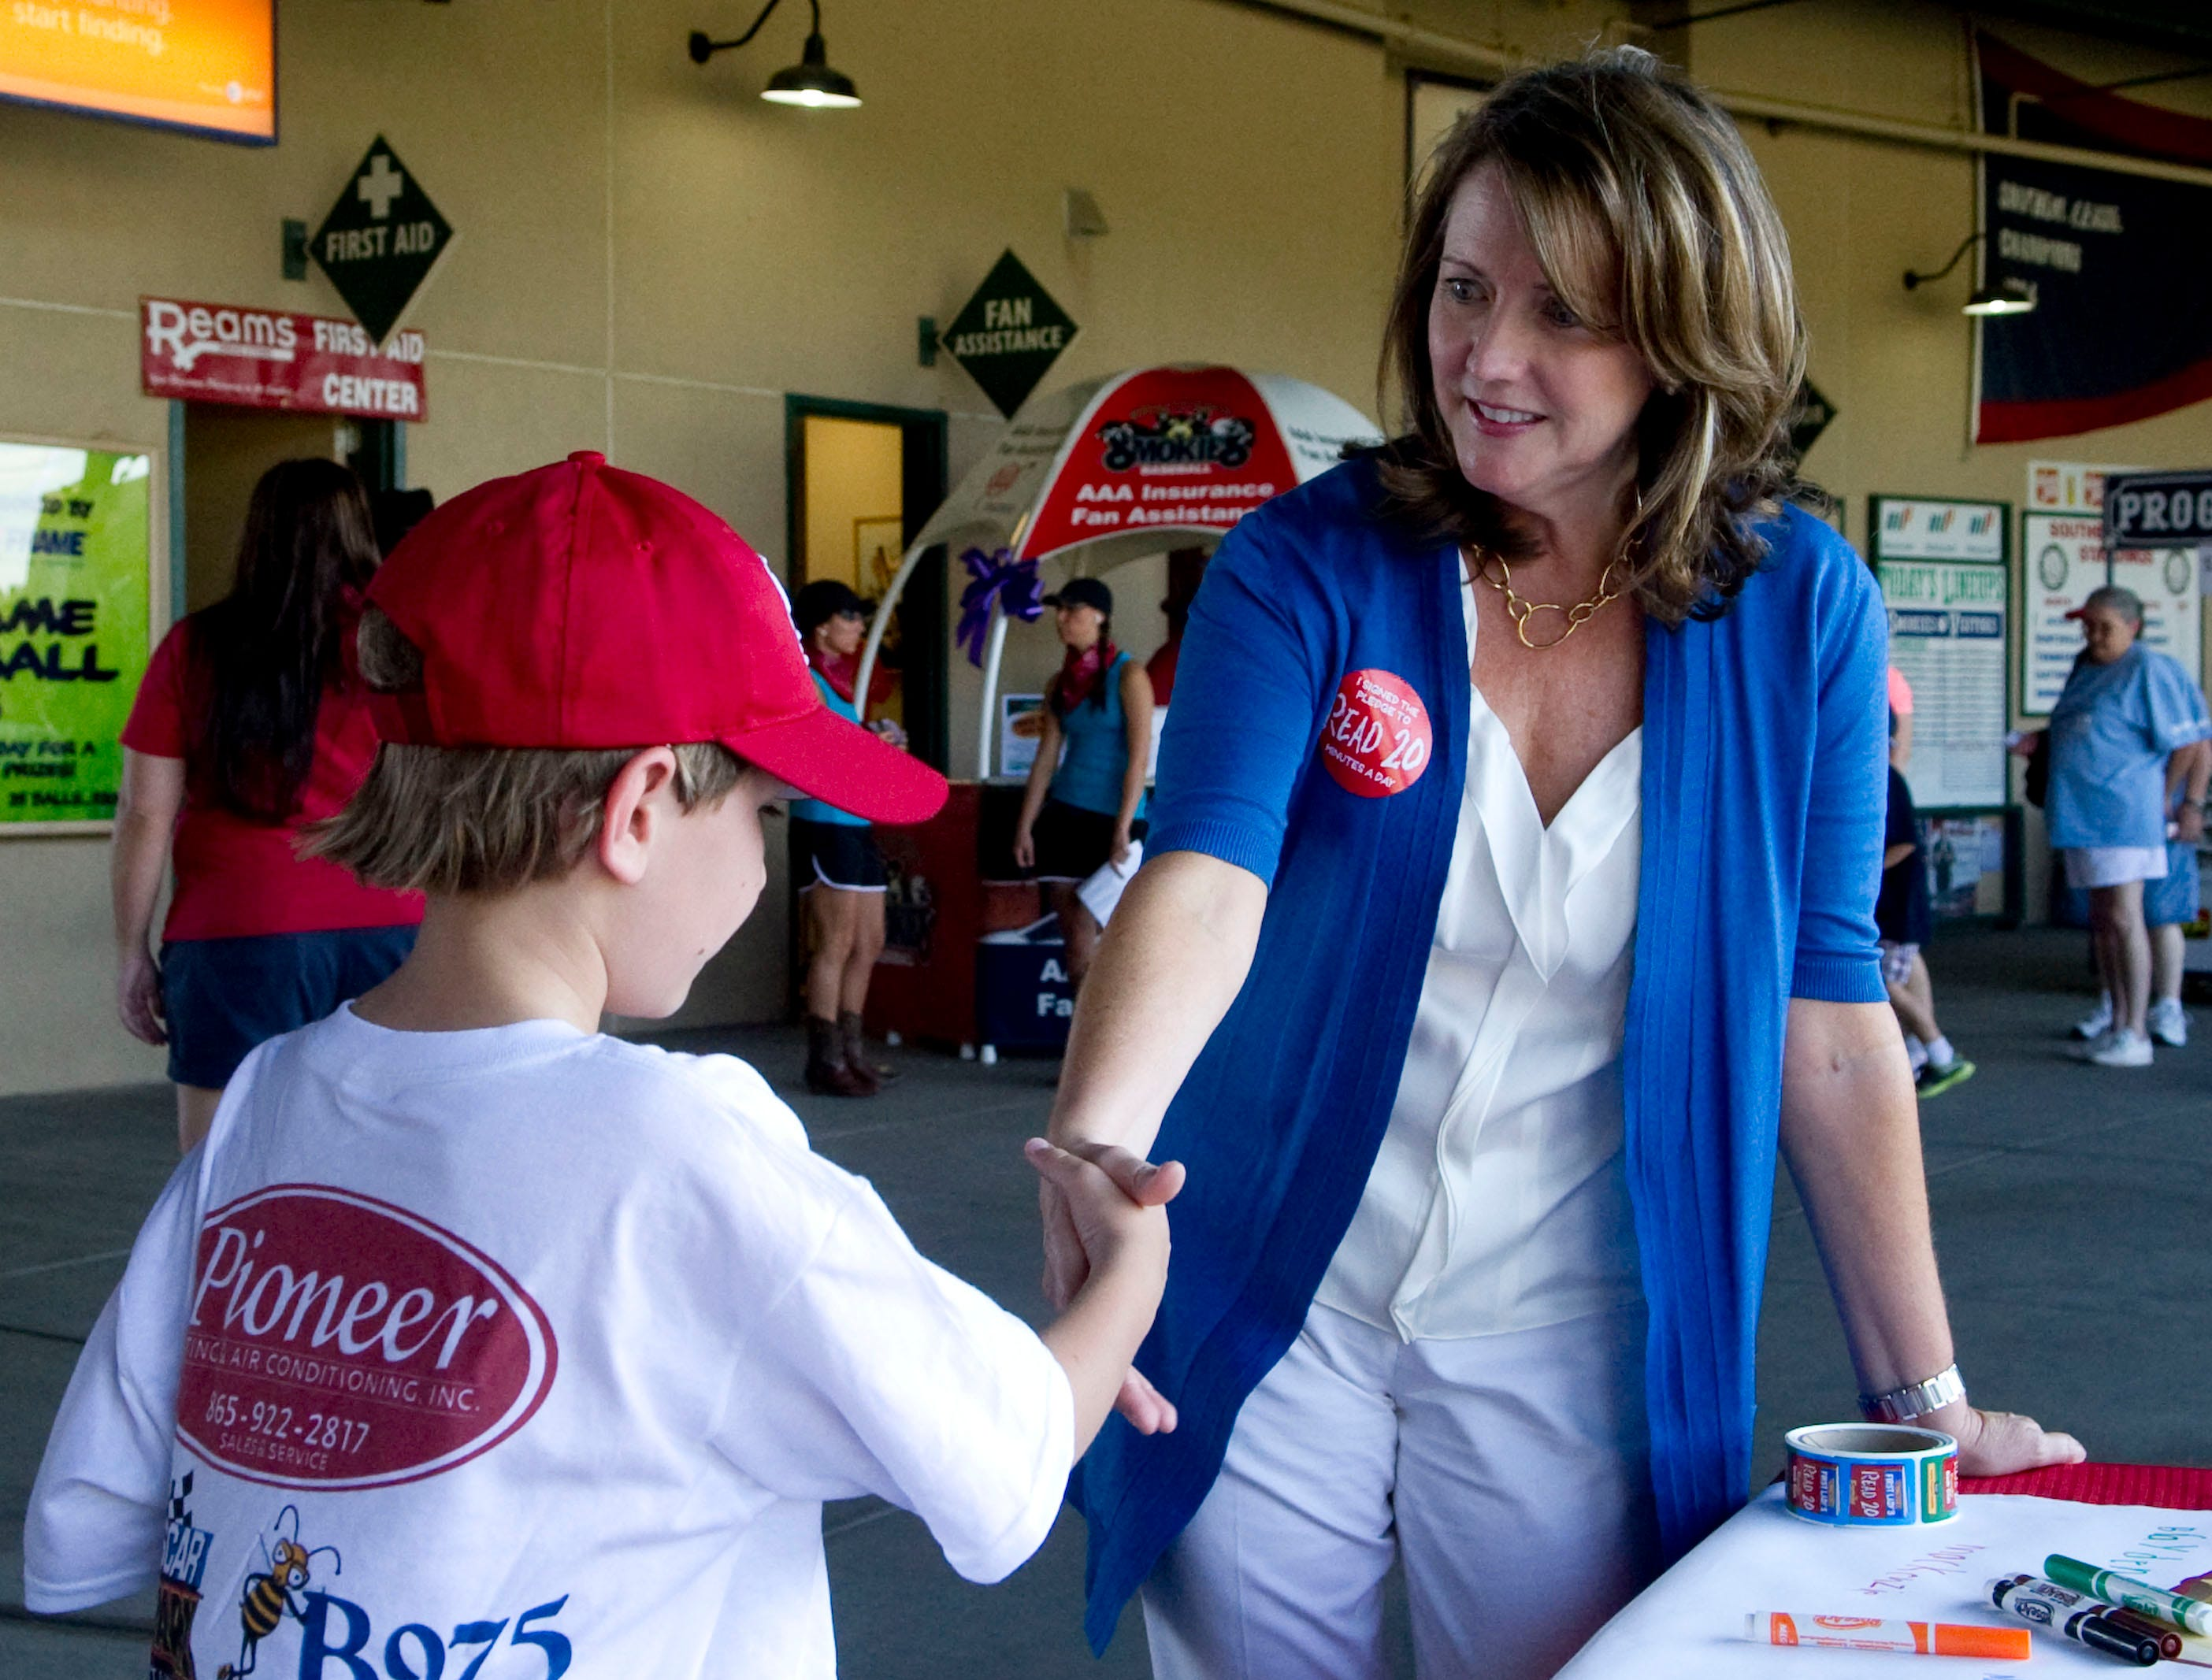 """Tennessee First Lady Crissy Haslam shakes hands with  Joel Mobley, 8, during a Tennessee Smokies game on Wednesday, June 13, 2012. Mobley received a book, """"Frindle"""" by Andrew Clements, from the First Lady who was at the park to promote her Read20 Book Club, an initiative her office to promote reading with children for at least 20 minutes a day."""